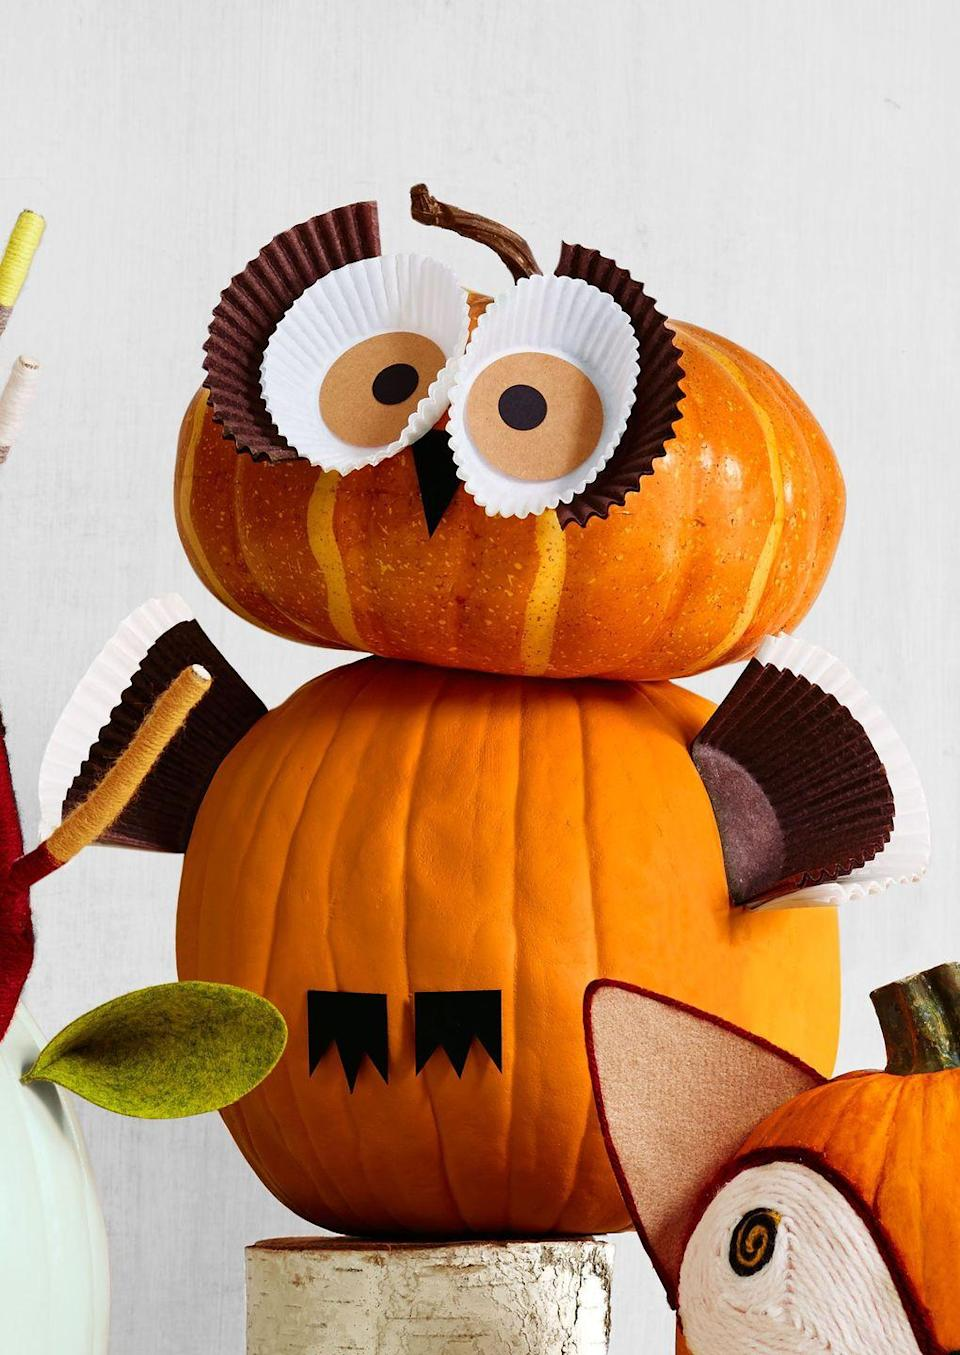 <p><em>H00</em> could resist crafting this stacked owl? <br><strong><br>Make the pumpkin:</strong> For the face, cut two circles (around the same circumference as a cupcake liner) on light brown paper and glue them to the bottom of two white liners. Cut out or draw two smaller black dots for the pupils. As for the lashes, cut a brown cupcake liner in half. Hot glue the eyes to the pumpkin.</p><p>For wings, cut a brown and a white liner in half and attach to the sides of bottom pumpkin. Cut a triangle beak and feet from black card stock and glue to the body. </p>